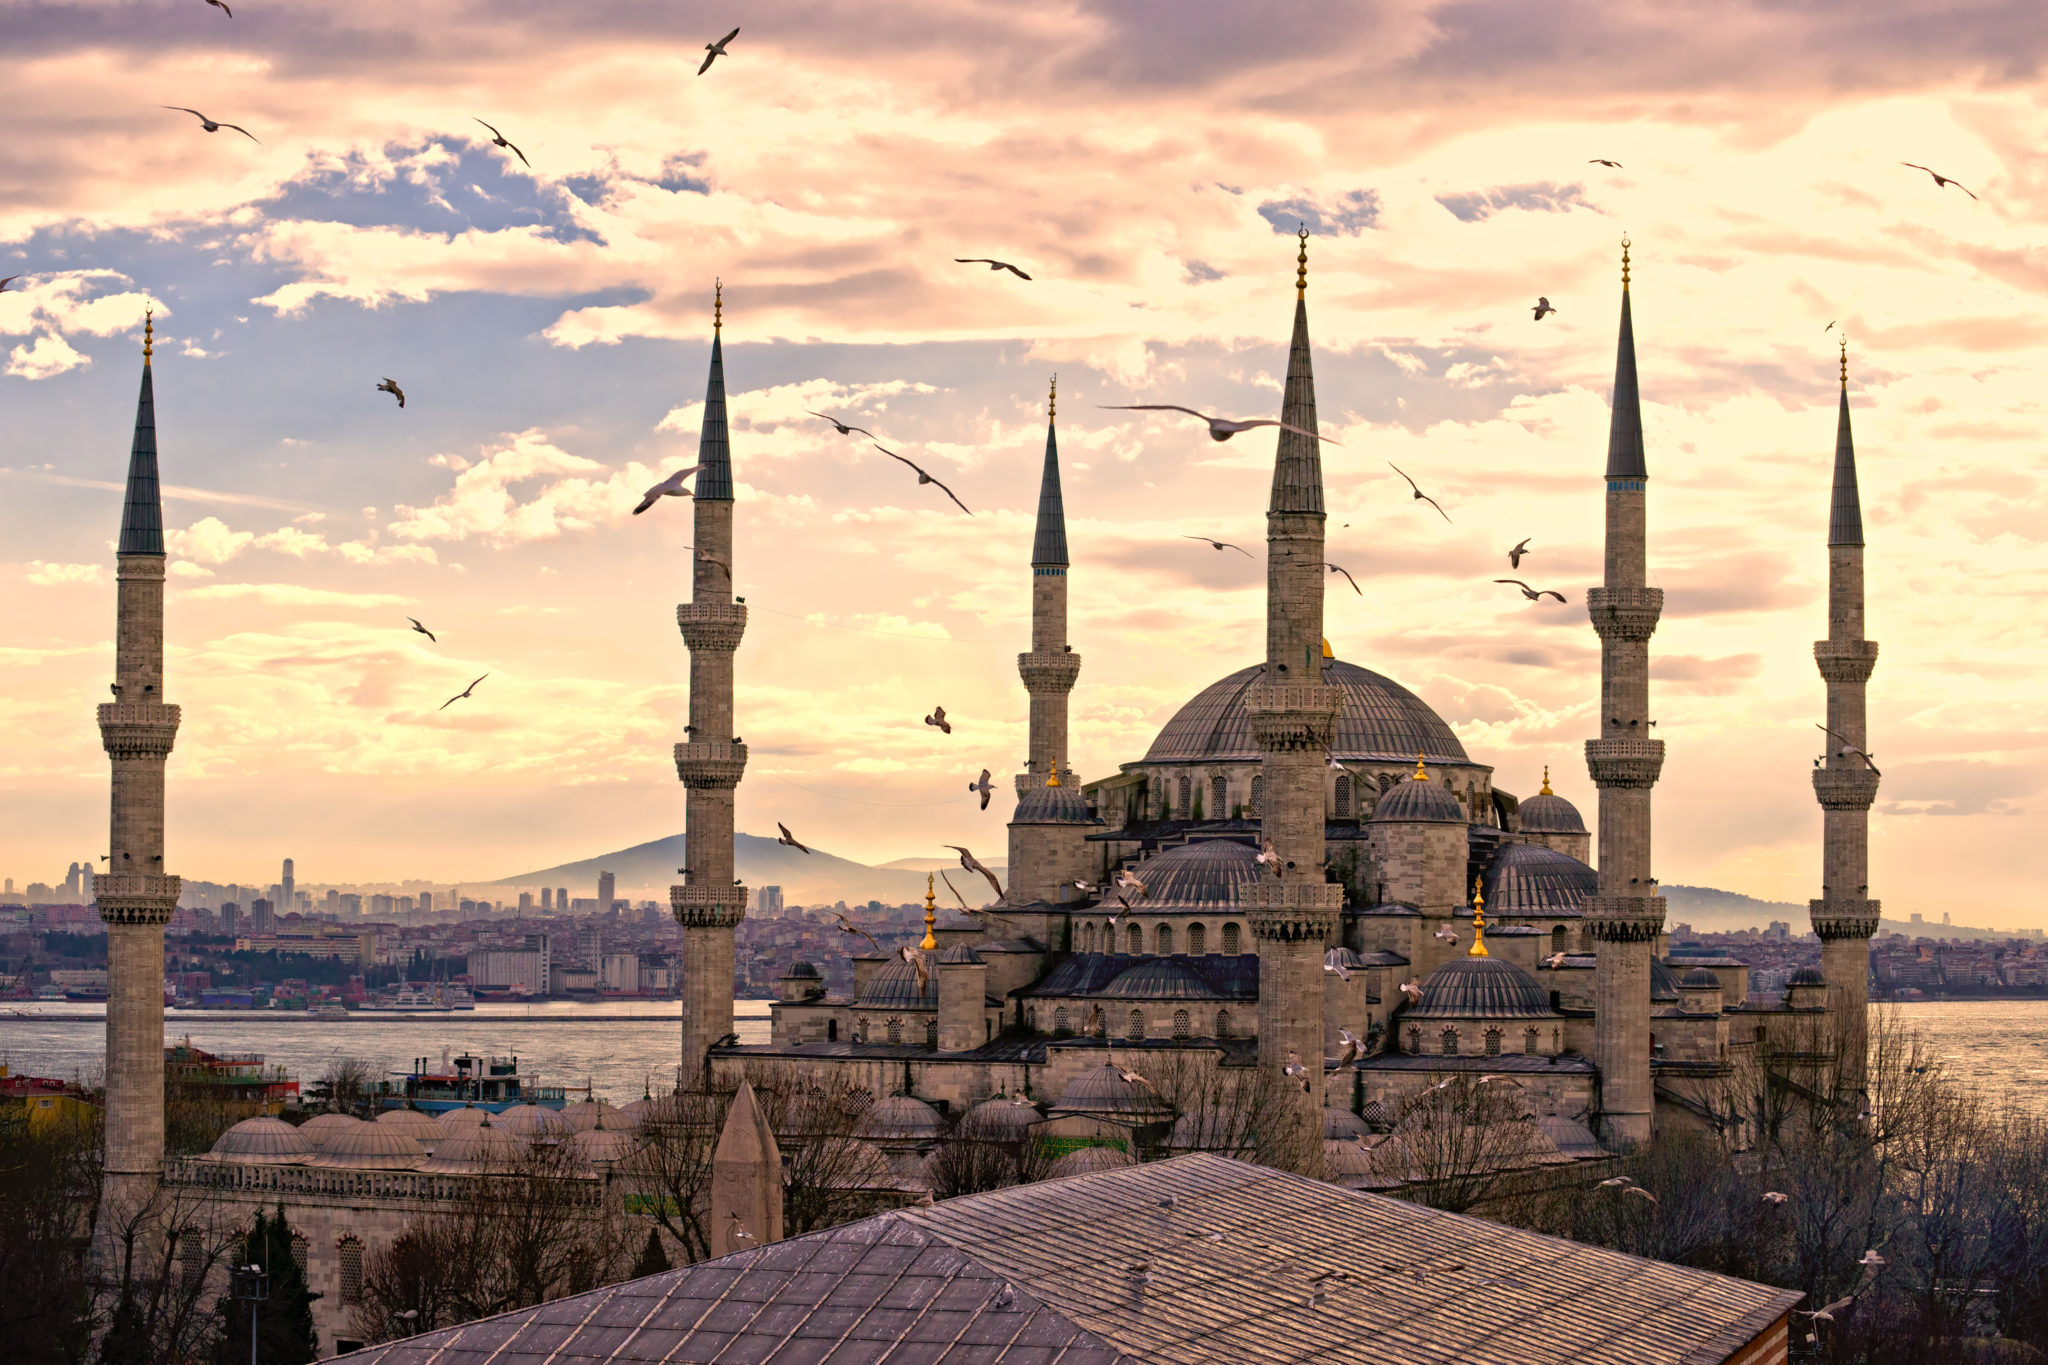 Wedaways Guide to Planning Your Honeymoon in Turkey